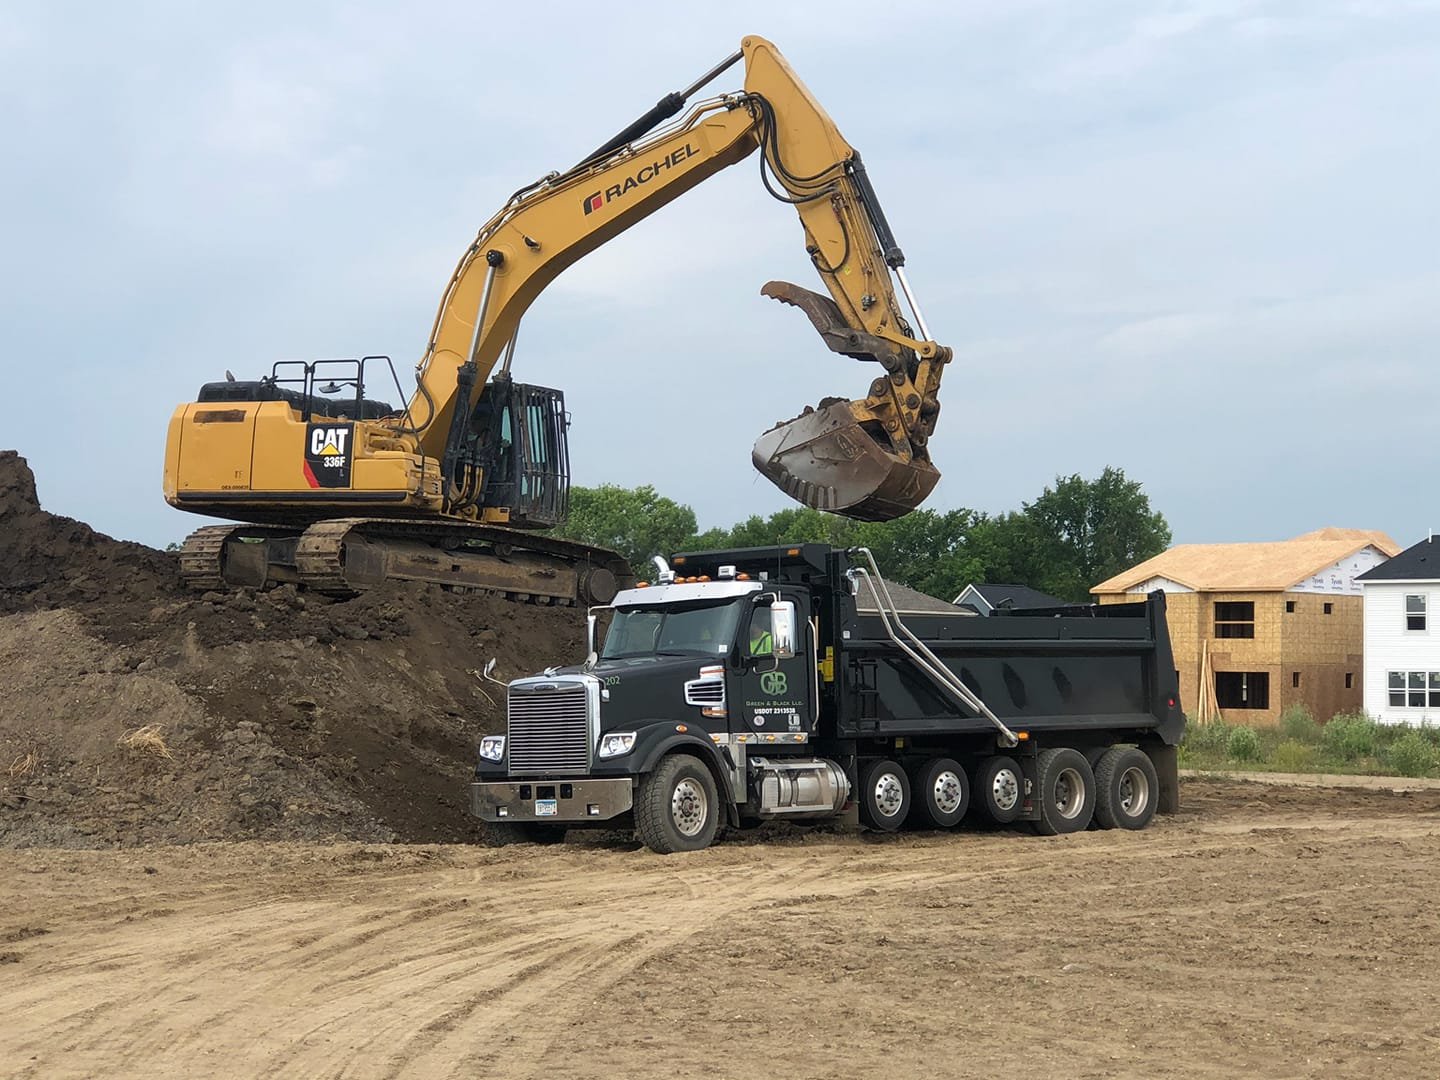 excavating machine and dump truck